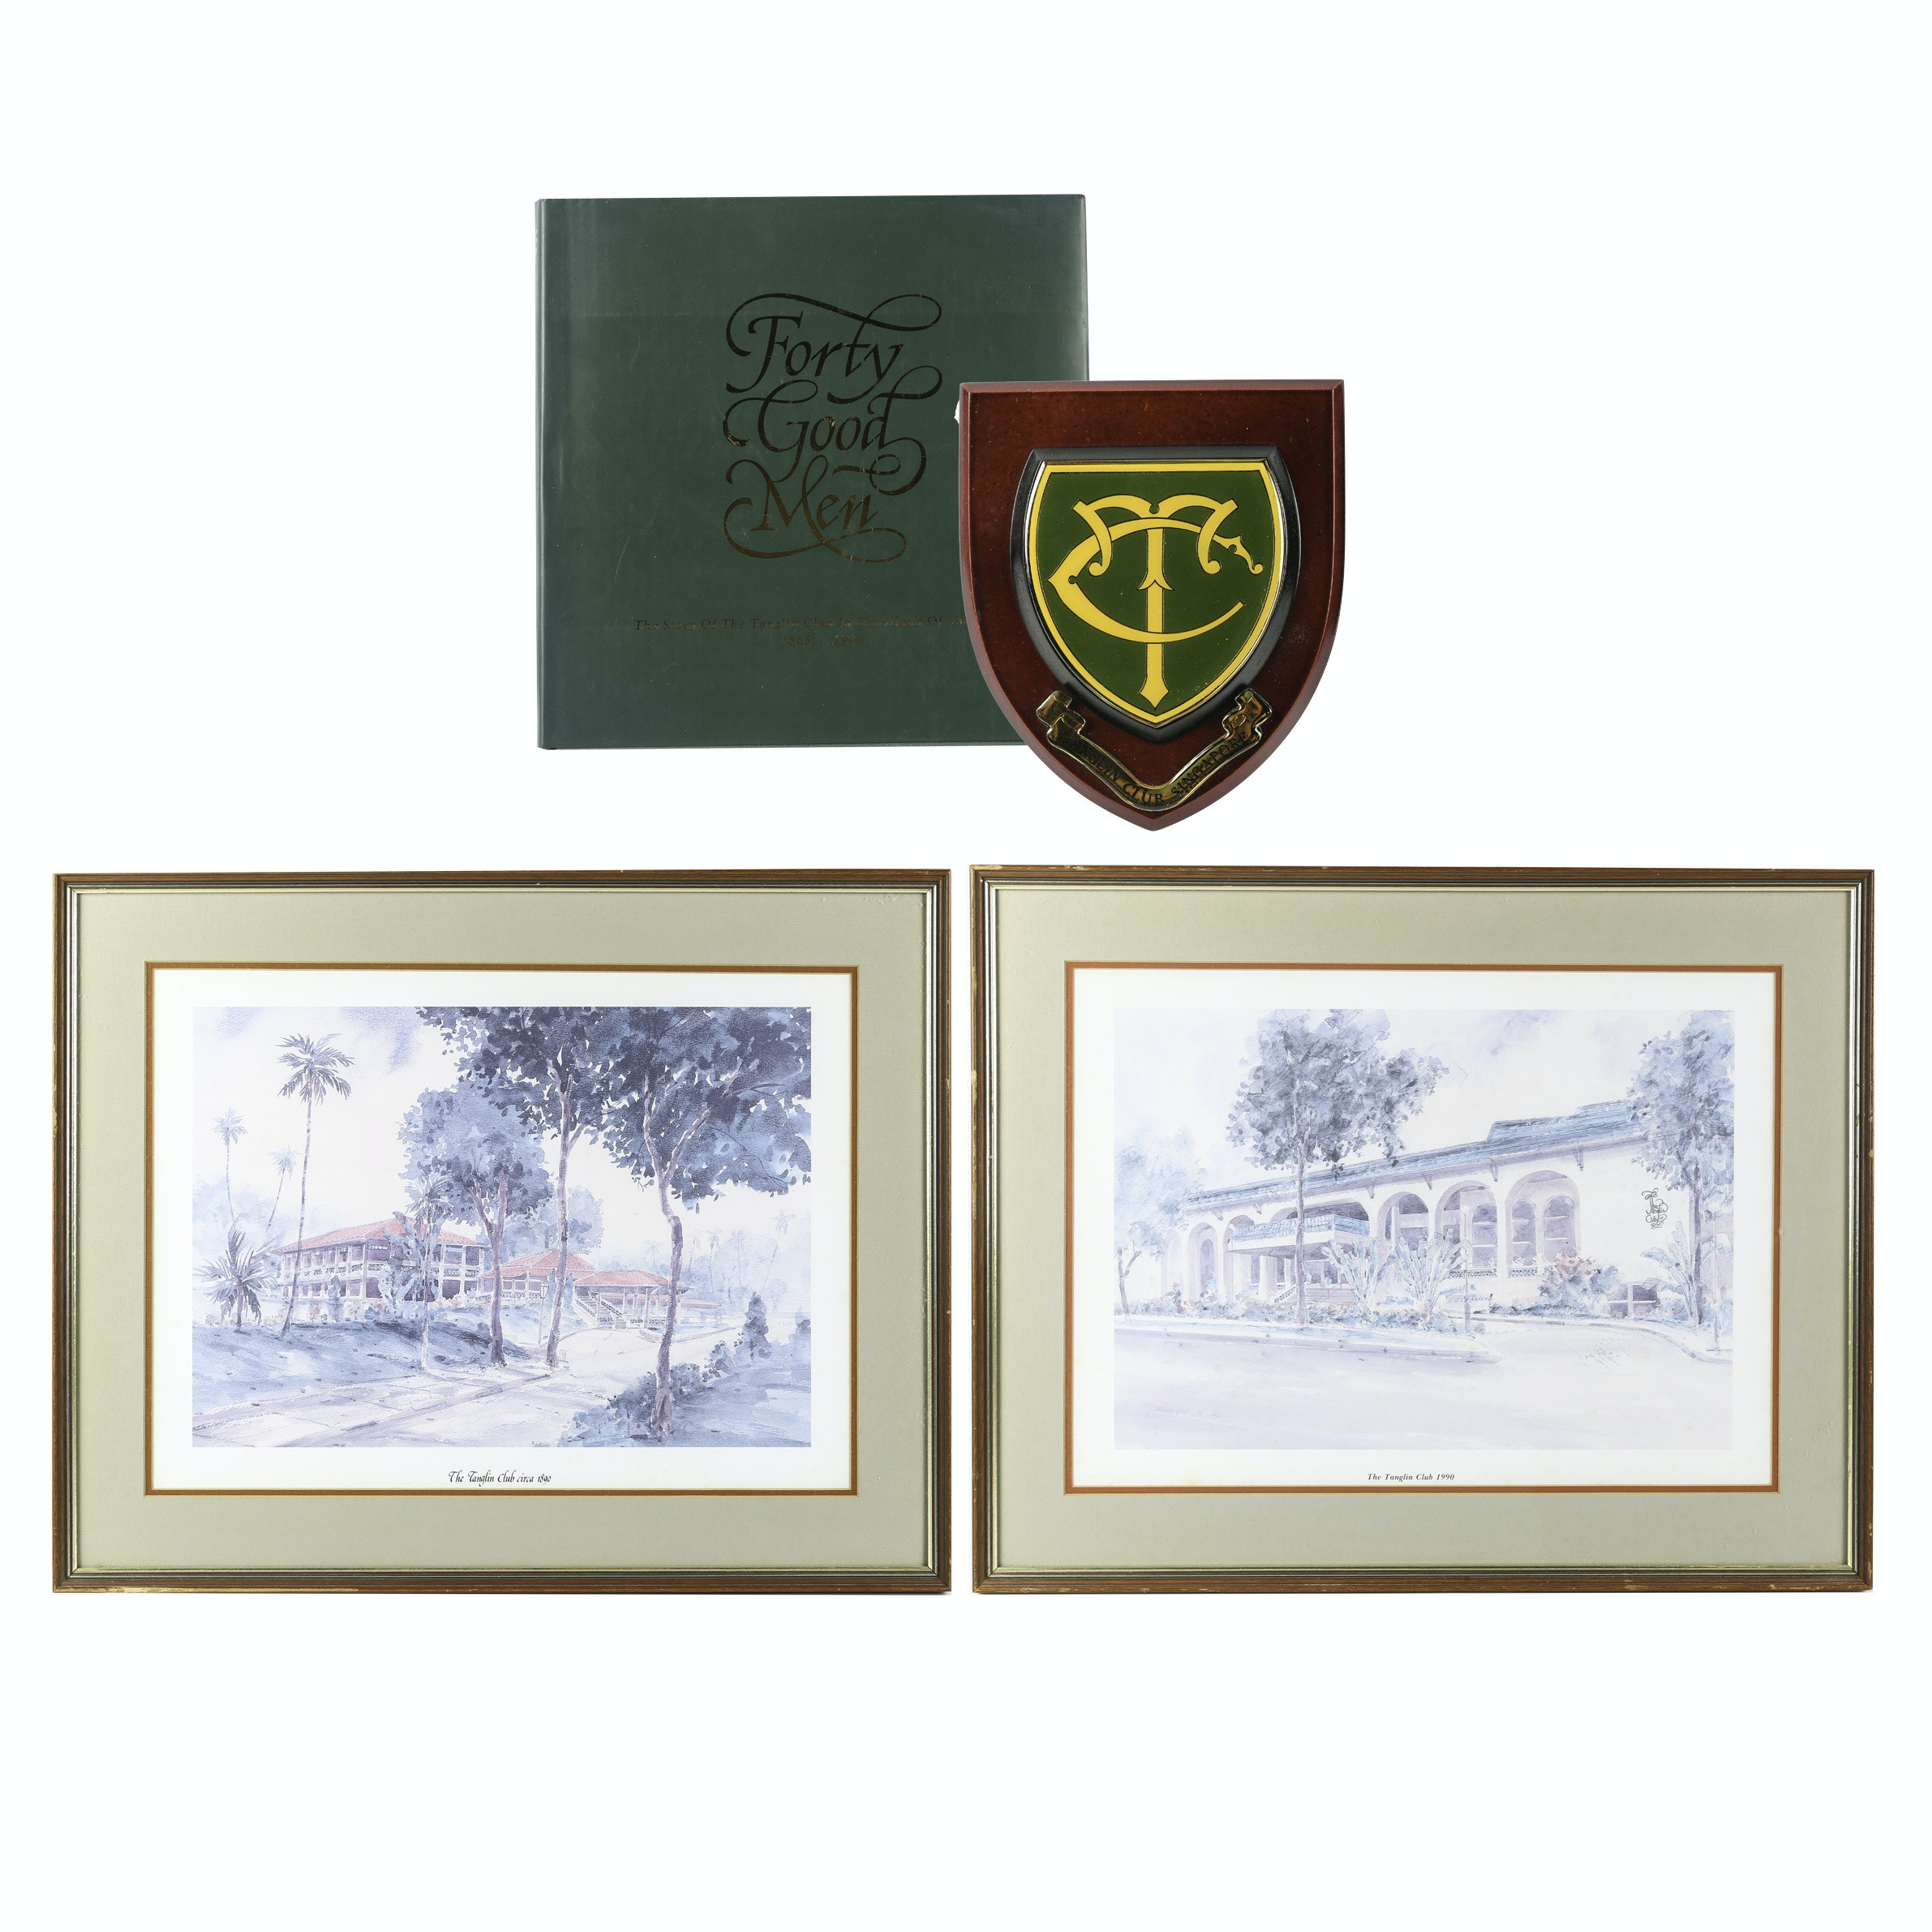 The Tanglin Club of Singapore Framed Prints and Book